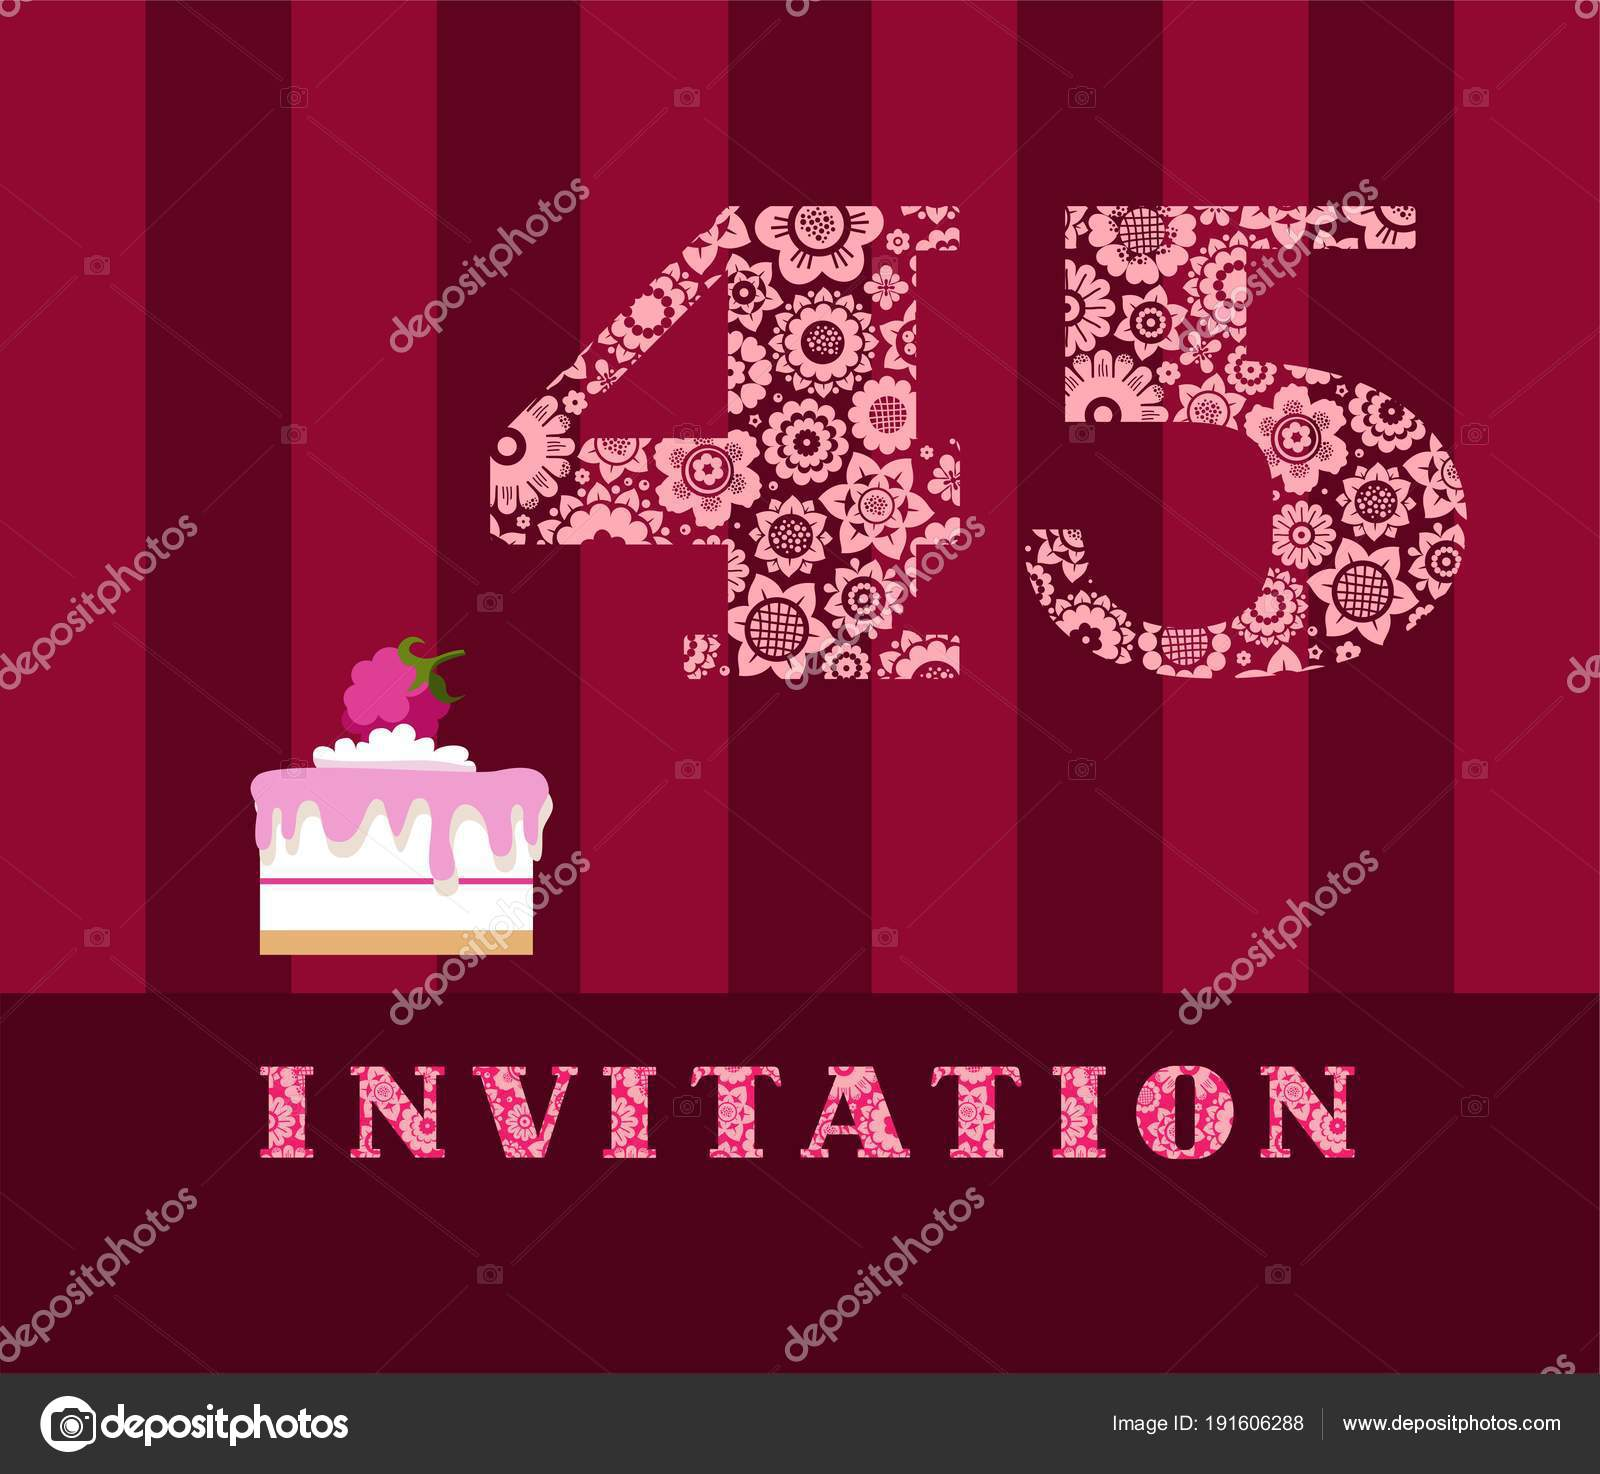 Invitation 45 Years Old Raspberry Pie Vector English The To Birthday Party Wedding Anniversary Color Card Berry Cake With Raspberries